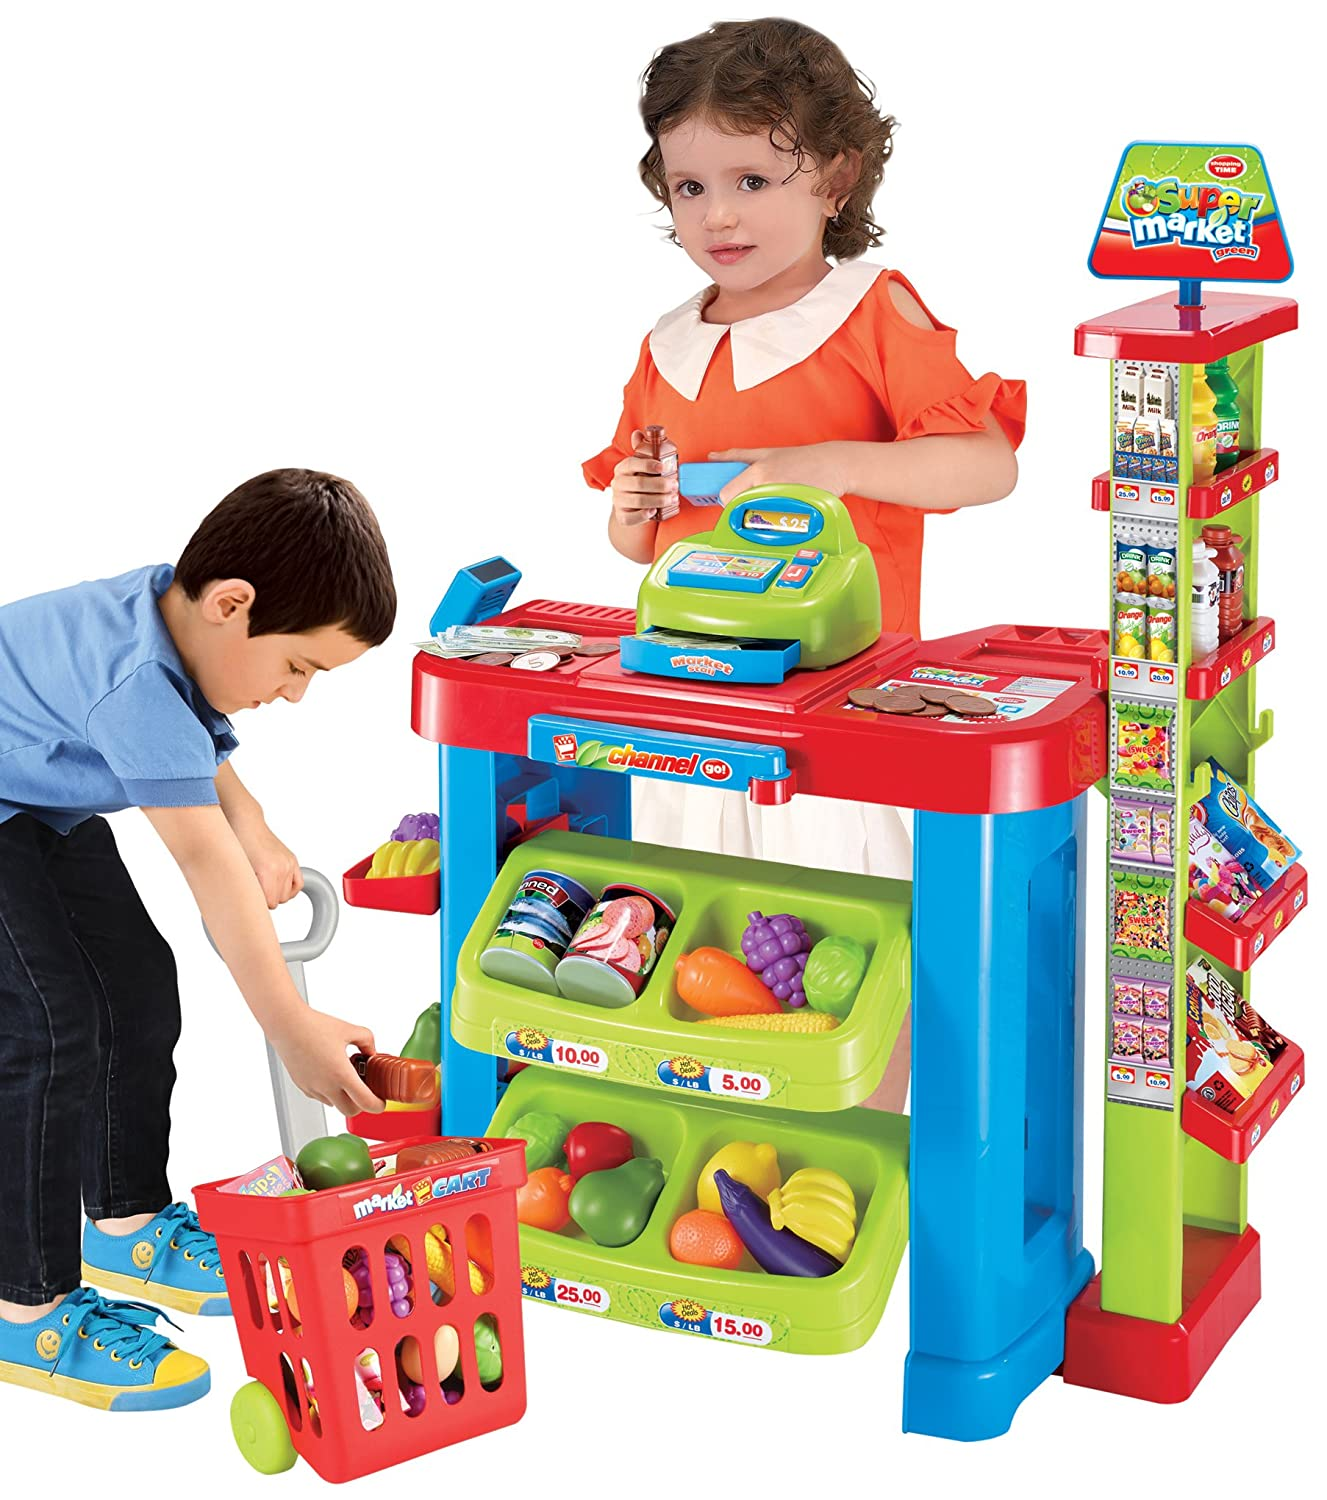 Amazon Berry Toys Play All Day Supermarket Play Set Toys & Games